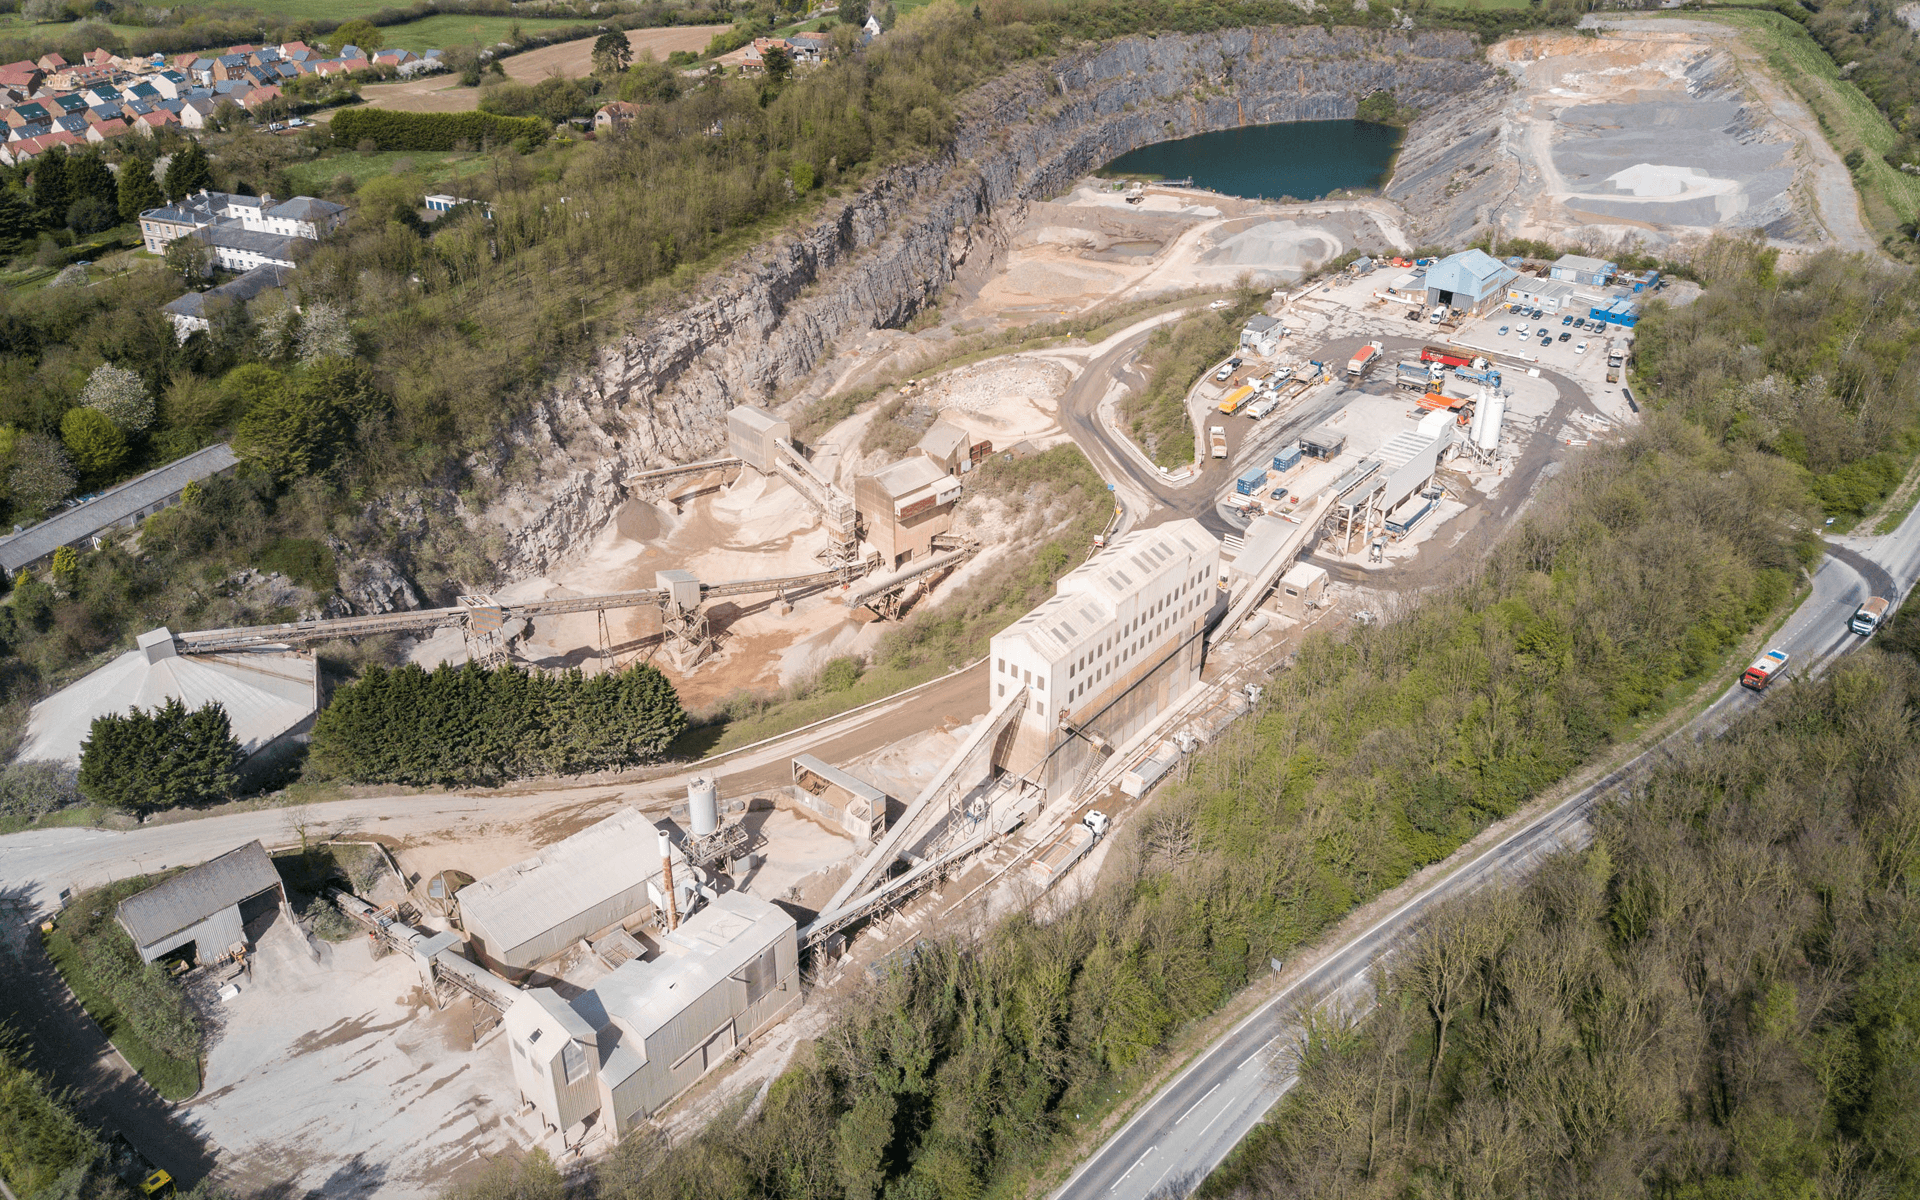 """Mavic Pro"" aerial drone photo of ""Hanson Aggregates"" quarry in Chipping Sodbury, Bristol"